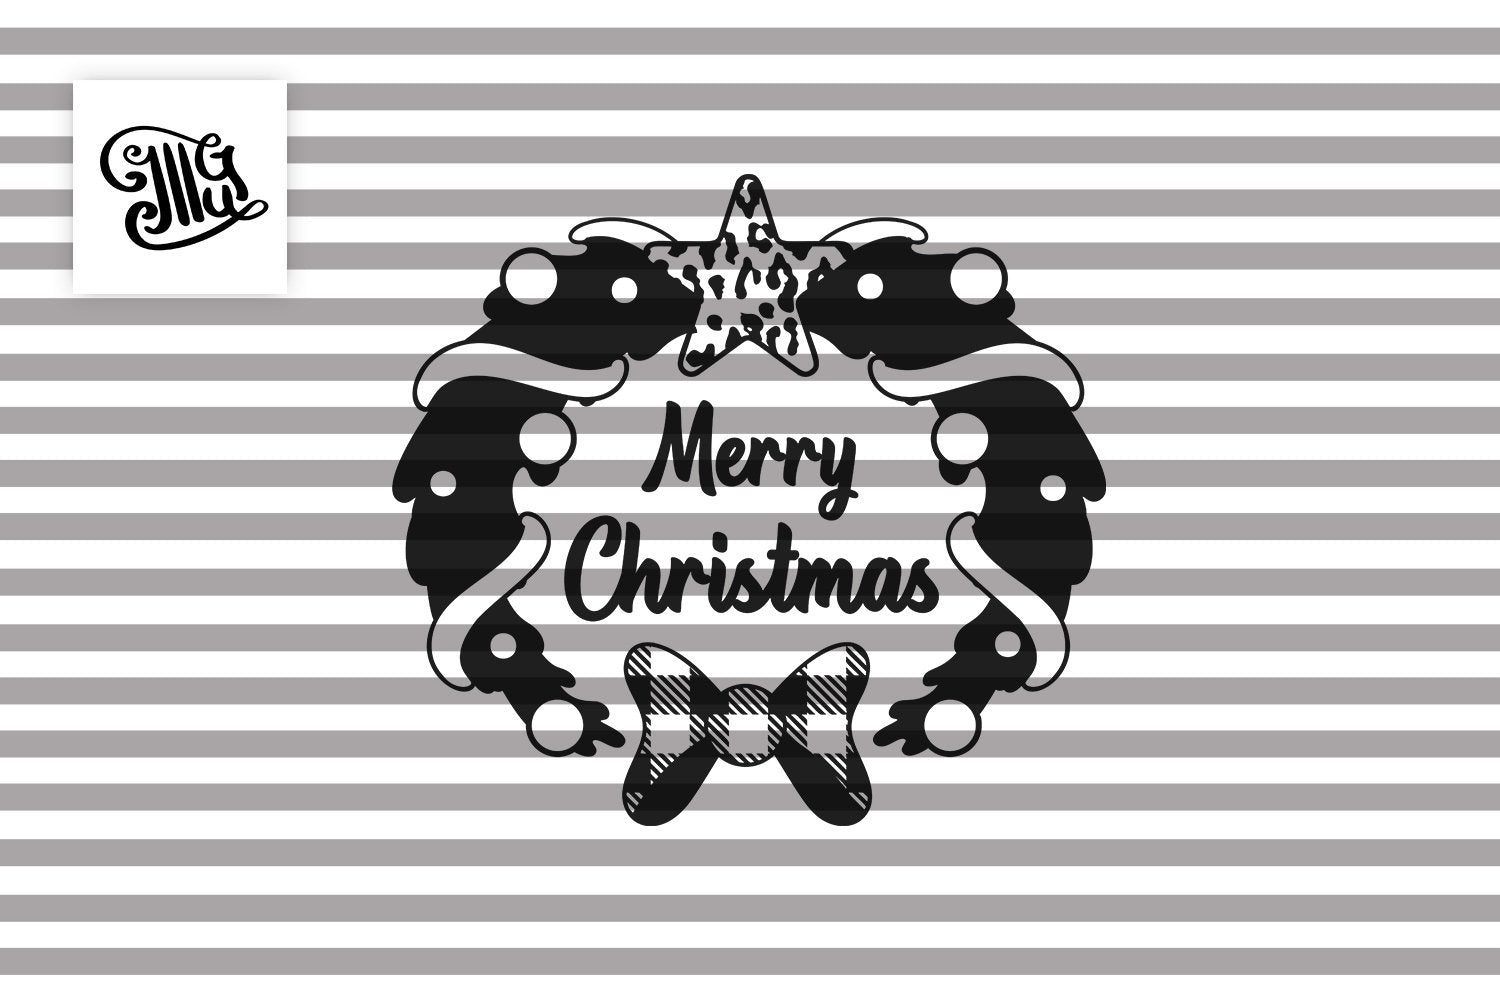 Merry Christmas Wreath Svg with Leopard and Buffalo Plaid Pattern-by Illustrator Guru